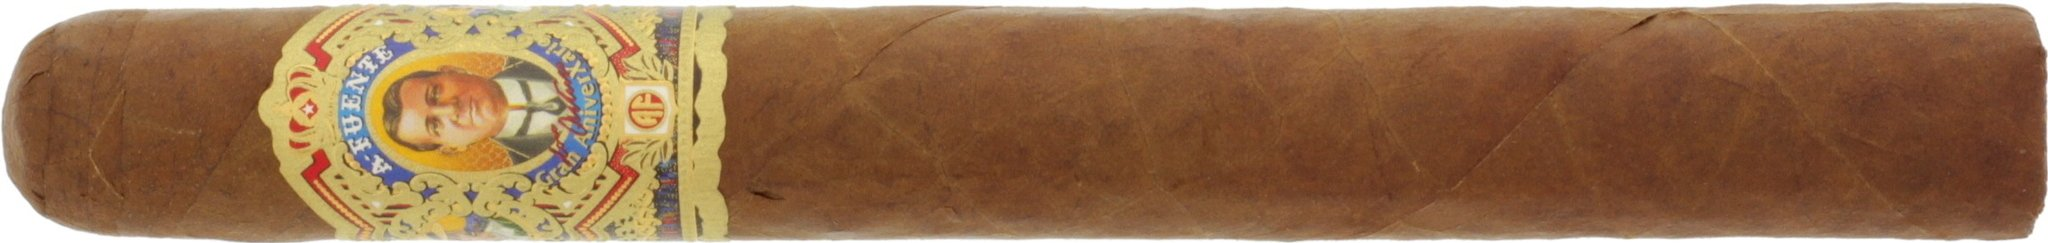 Arturo Fuente The Fuente Story NATURAL Short Churchill 2011